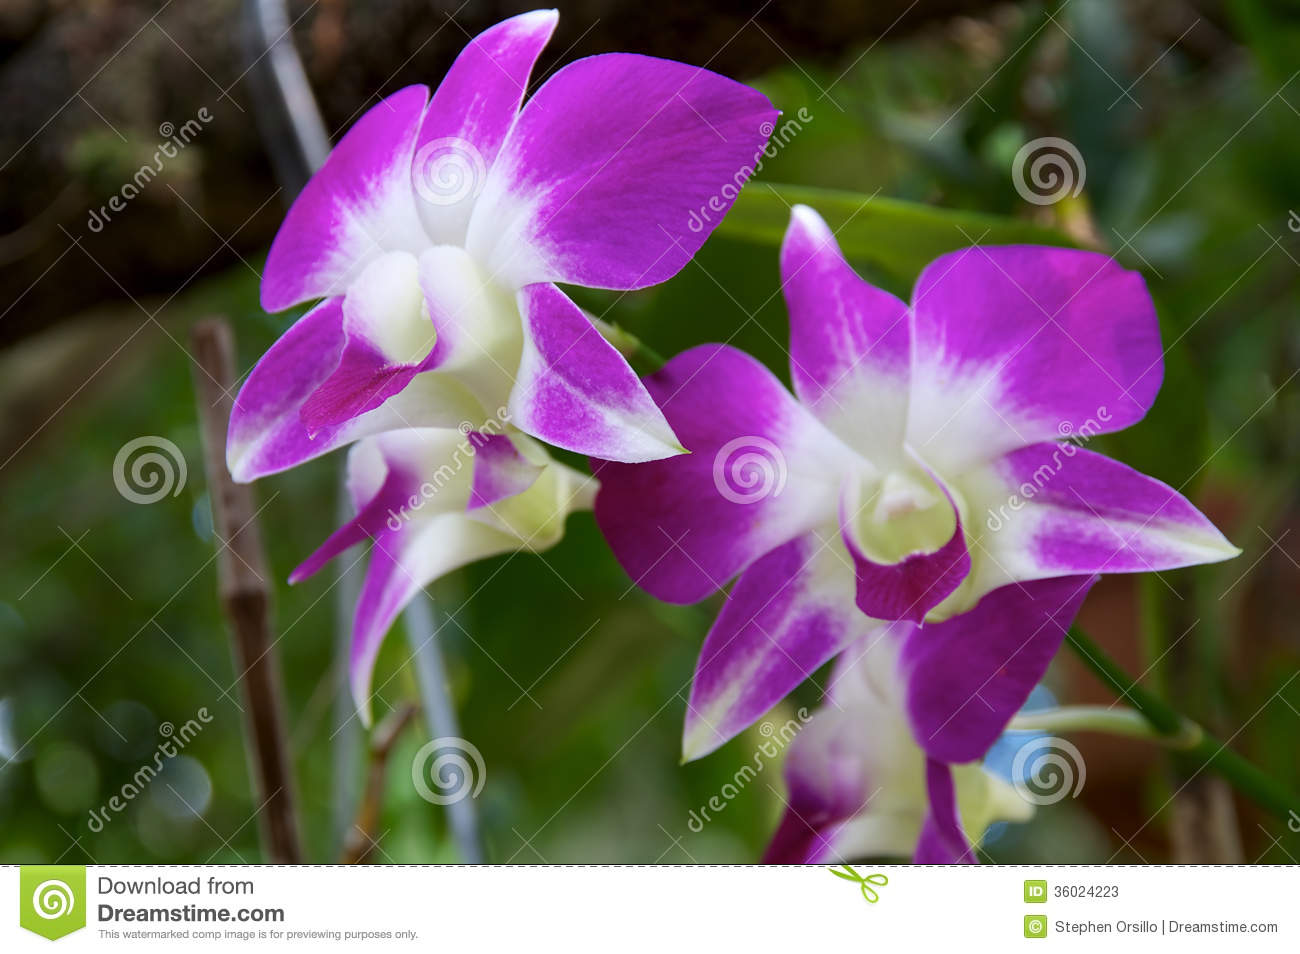 Purple and white orchid flowers stock image image of petals white download purple and white orchid flowers stock image image of petals white 36024223 mightylinksfo